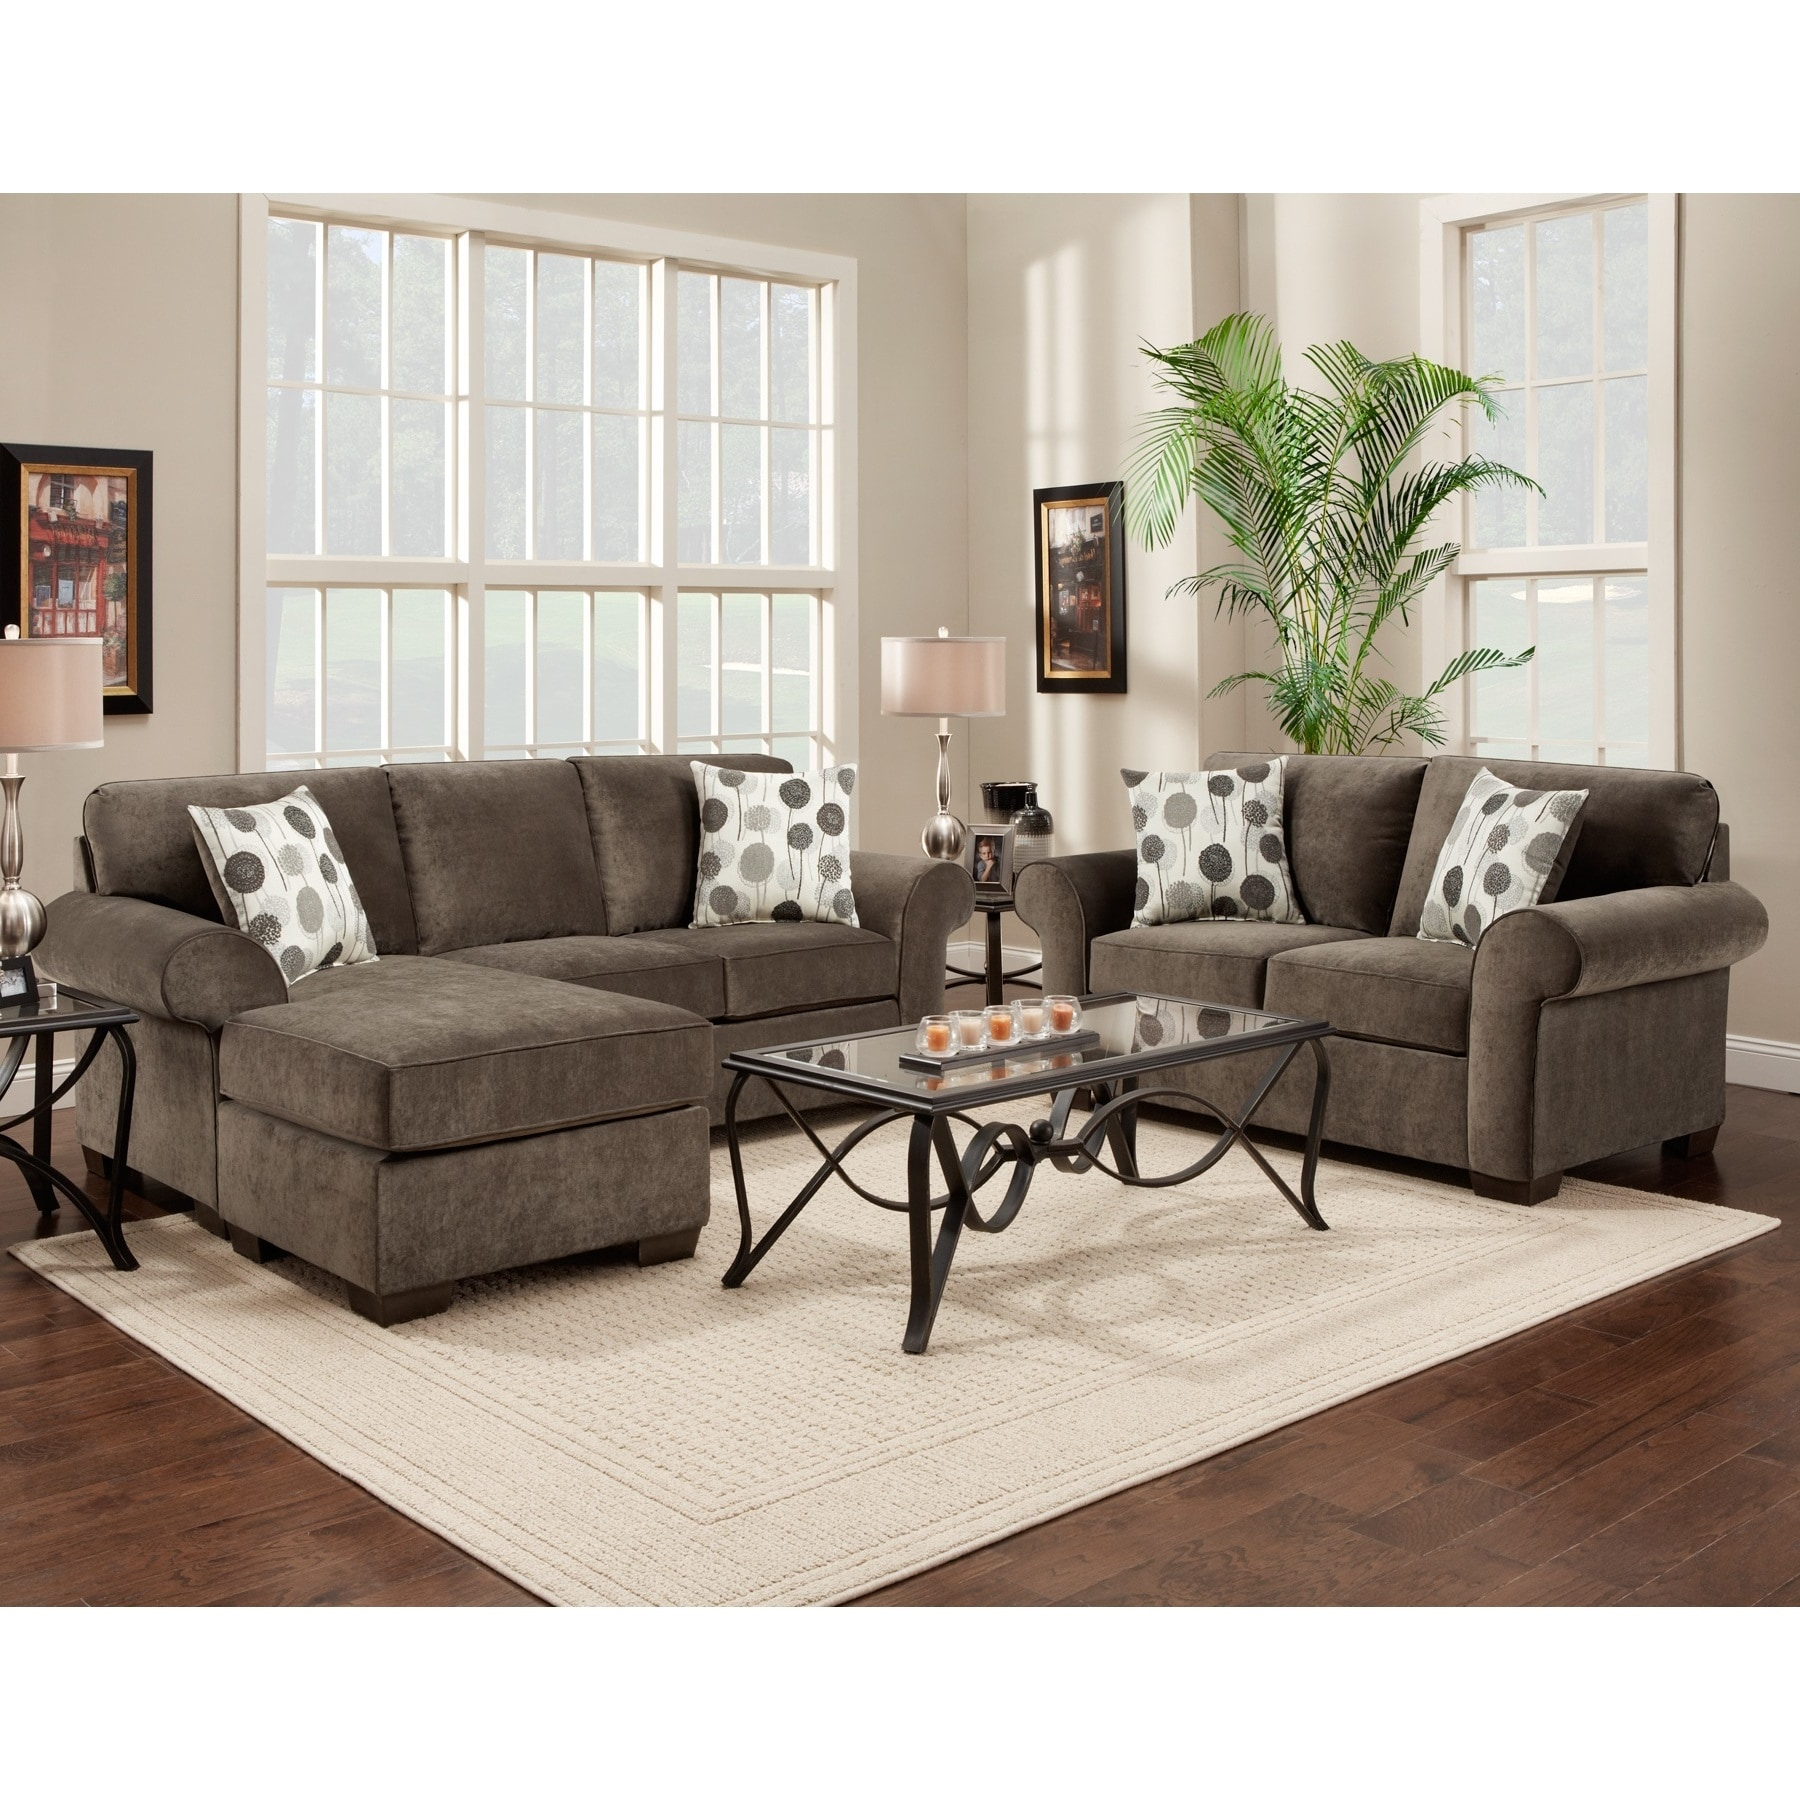 Sectional Loveseat – Tidex In Famous Turdur 3 Piece Sectionals With Laf Loveseat (View 18 of 20)